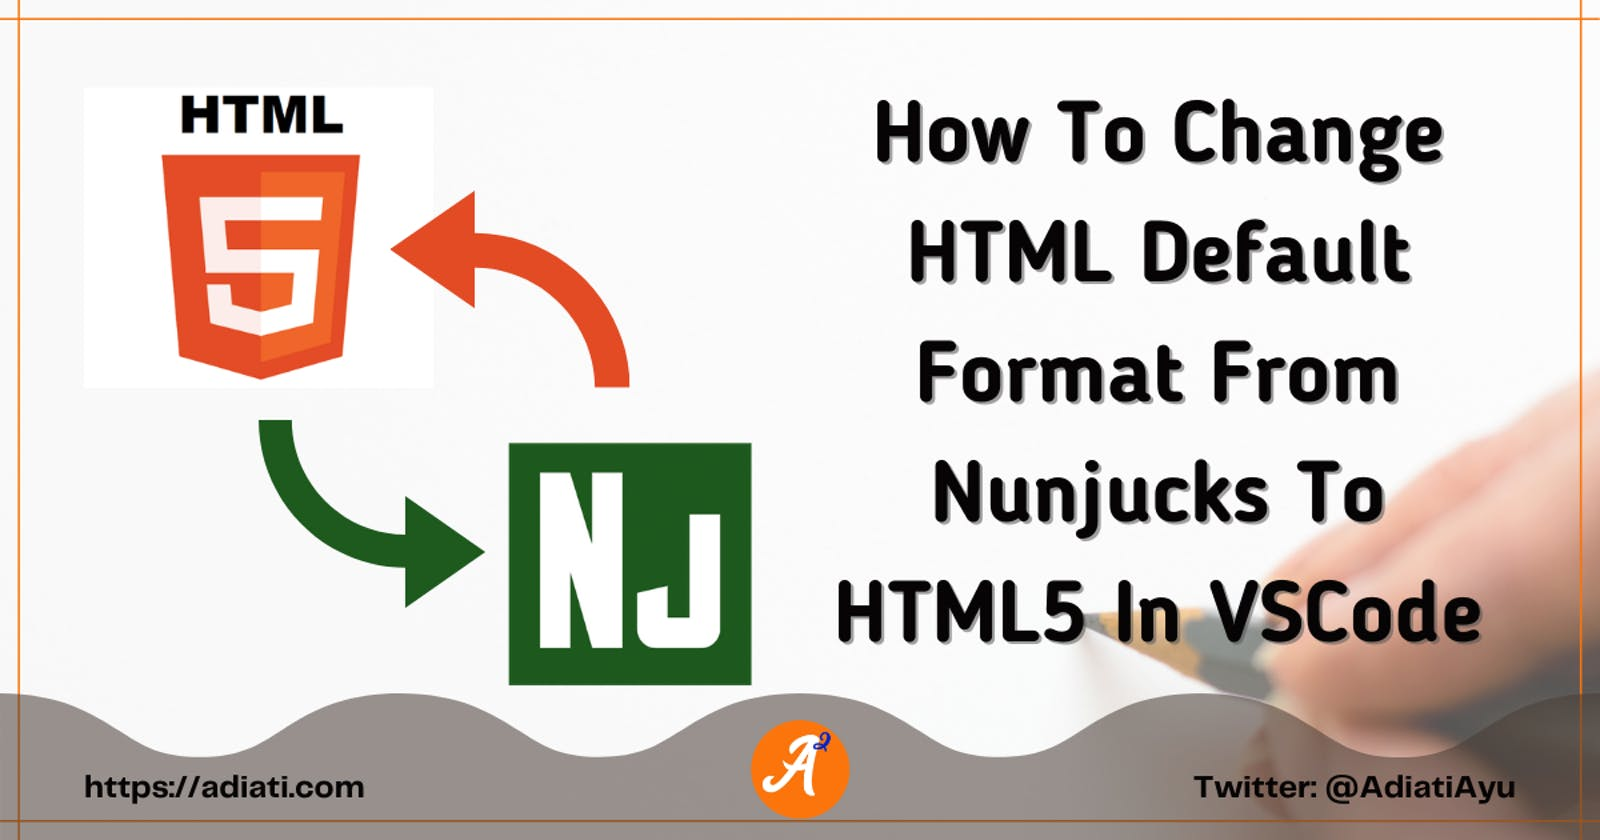 How To Change HTML Default Format From Nunjucks To HTML5 In VSCode